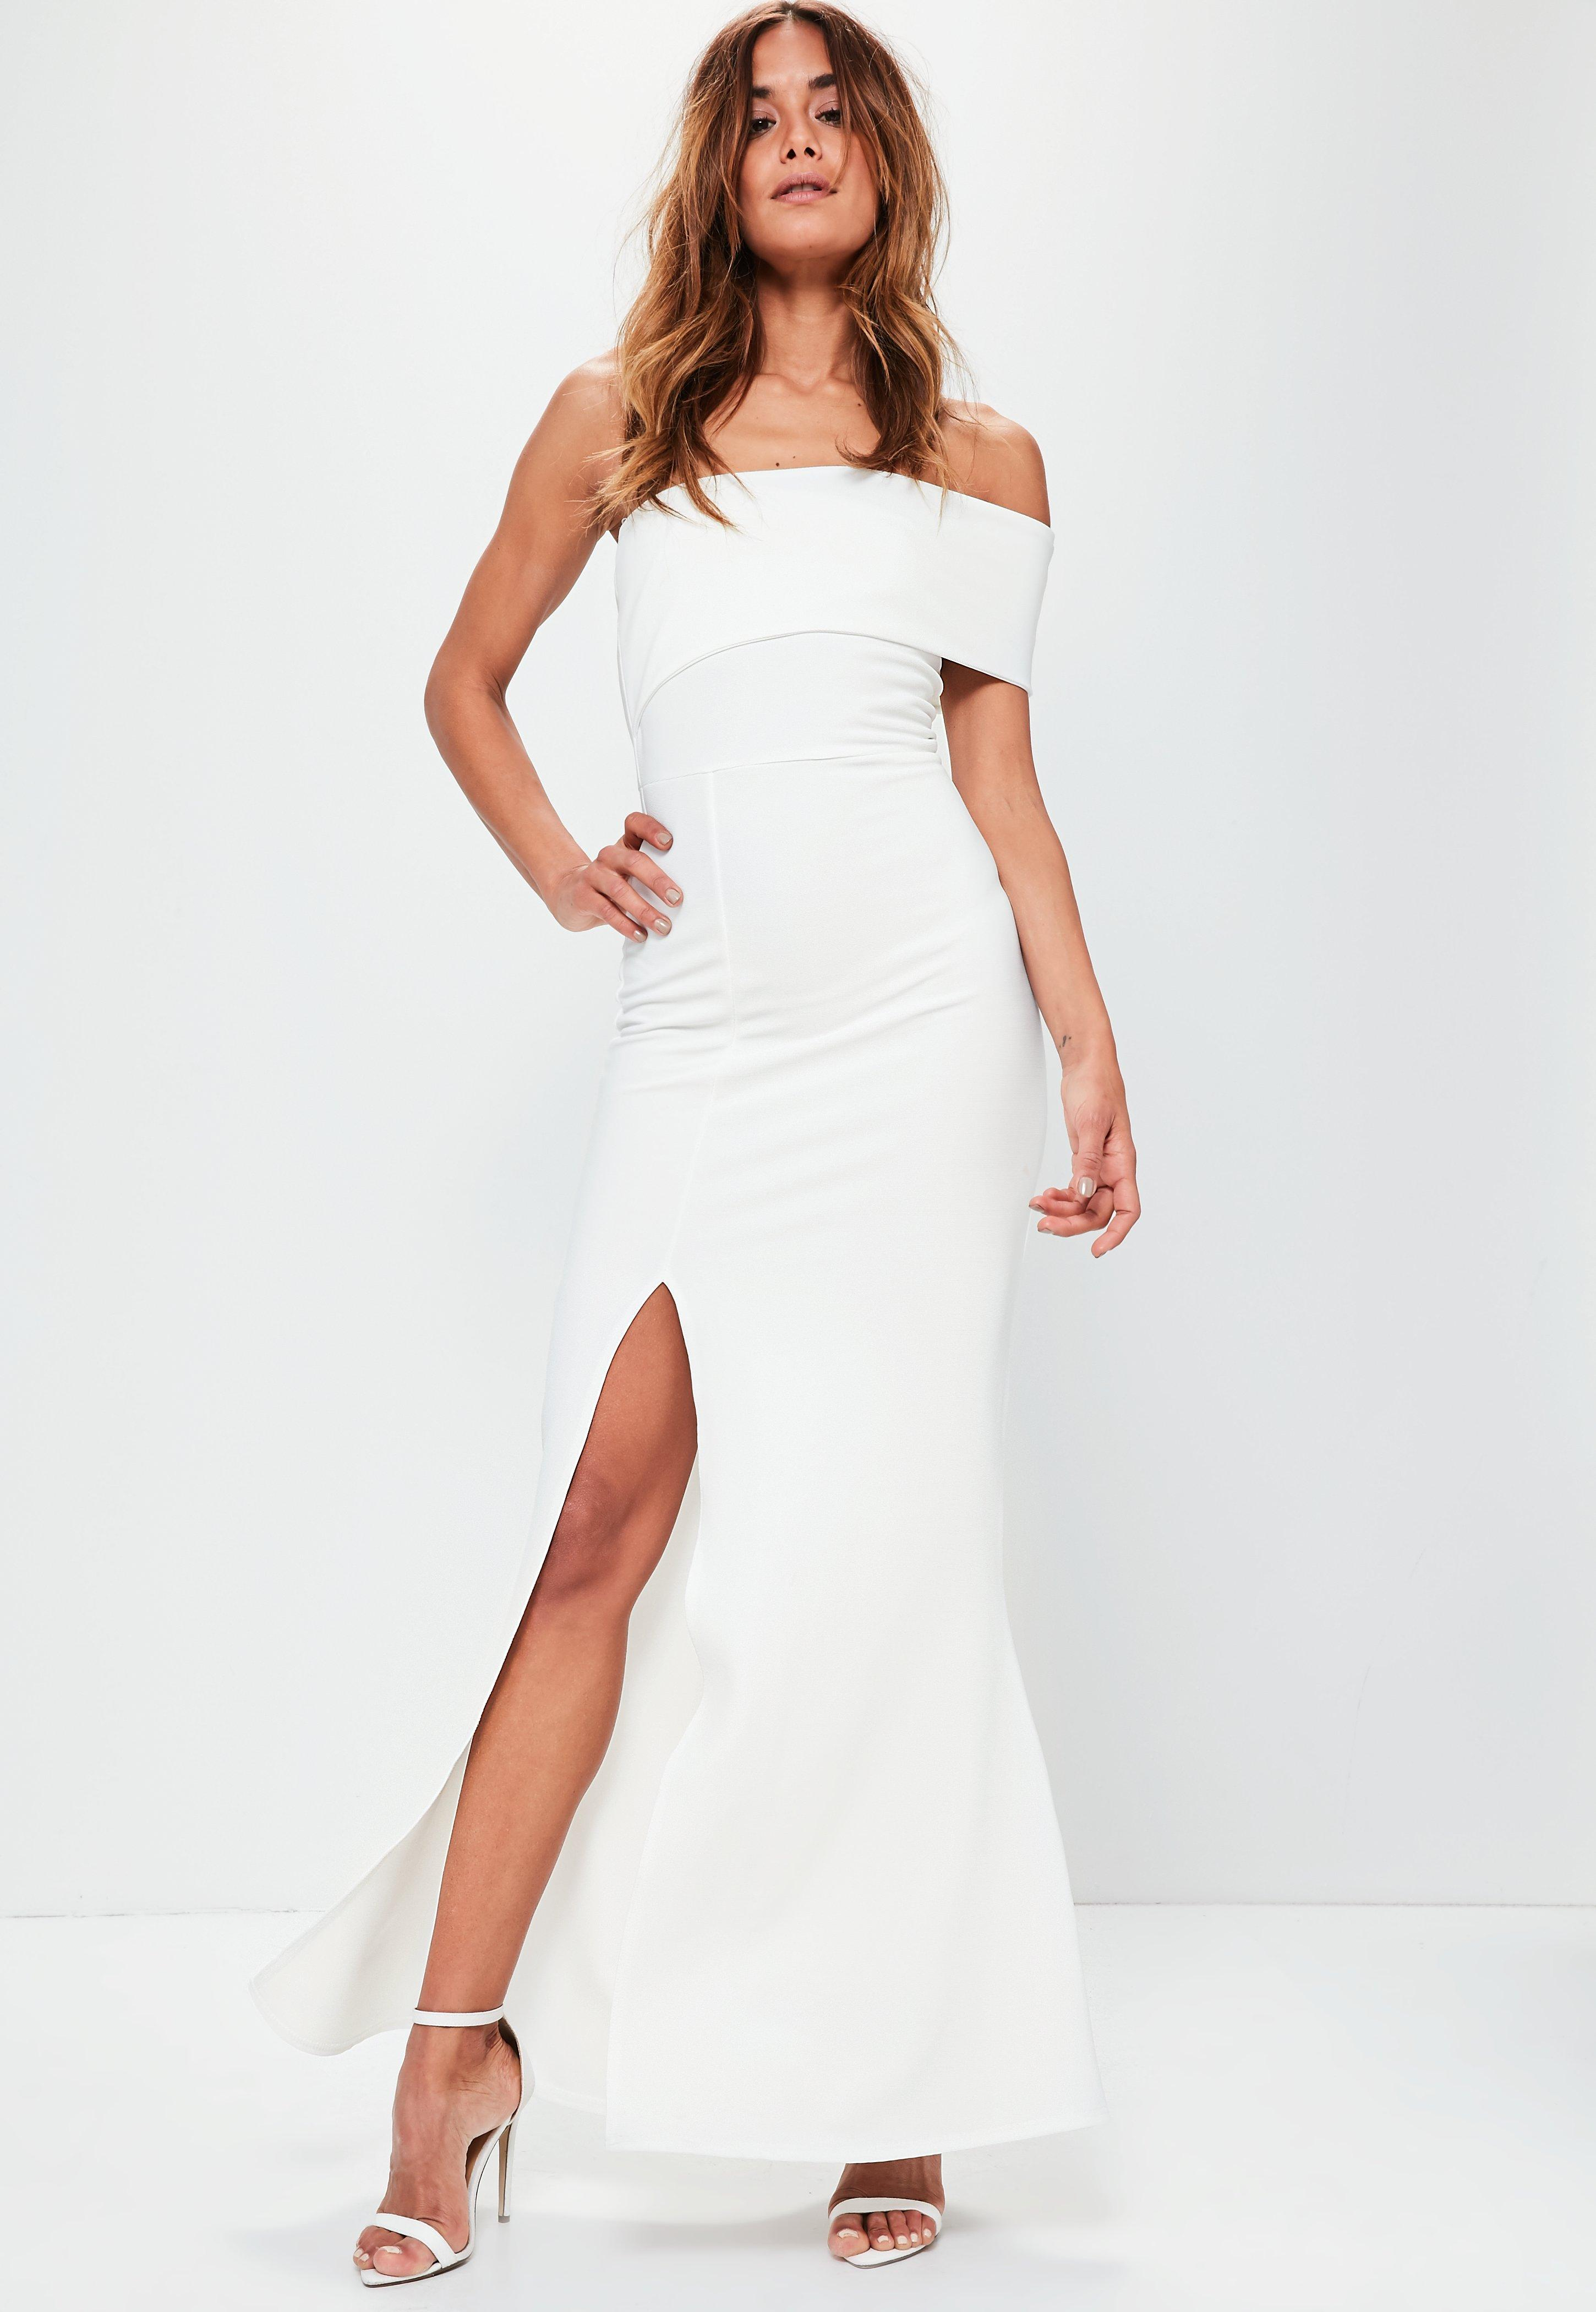 615d49ce9fd Missguided White One Shoulder Maxi Dress in White - Lyst